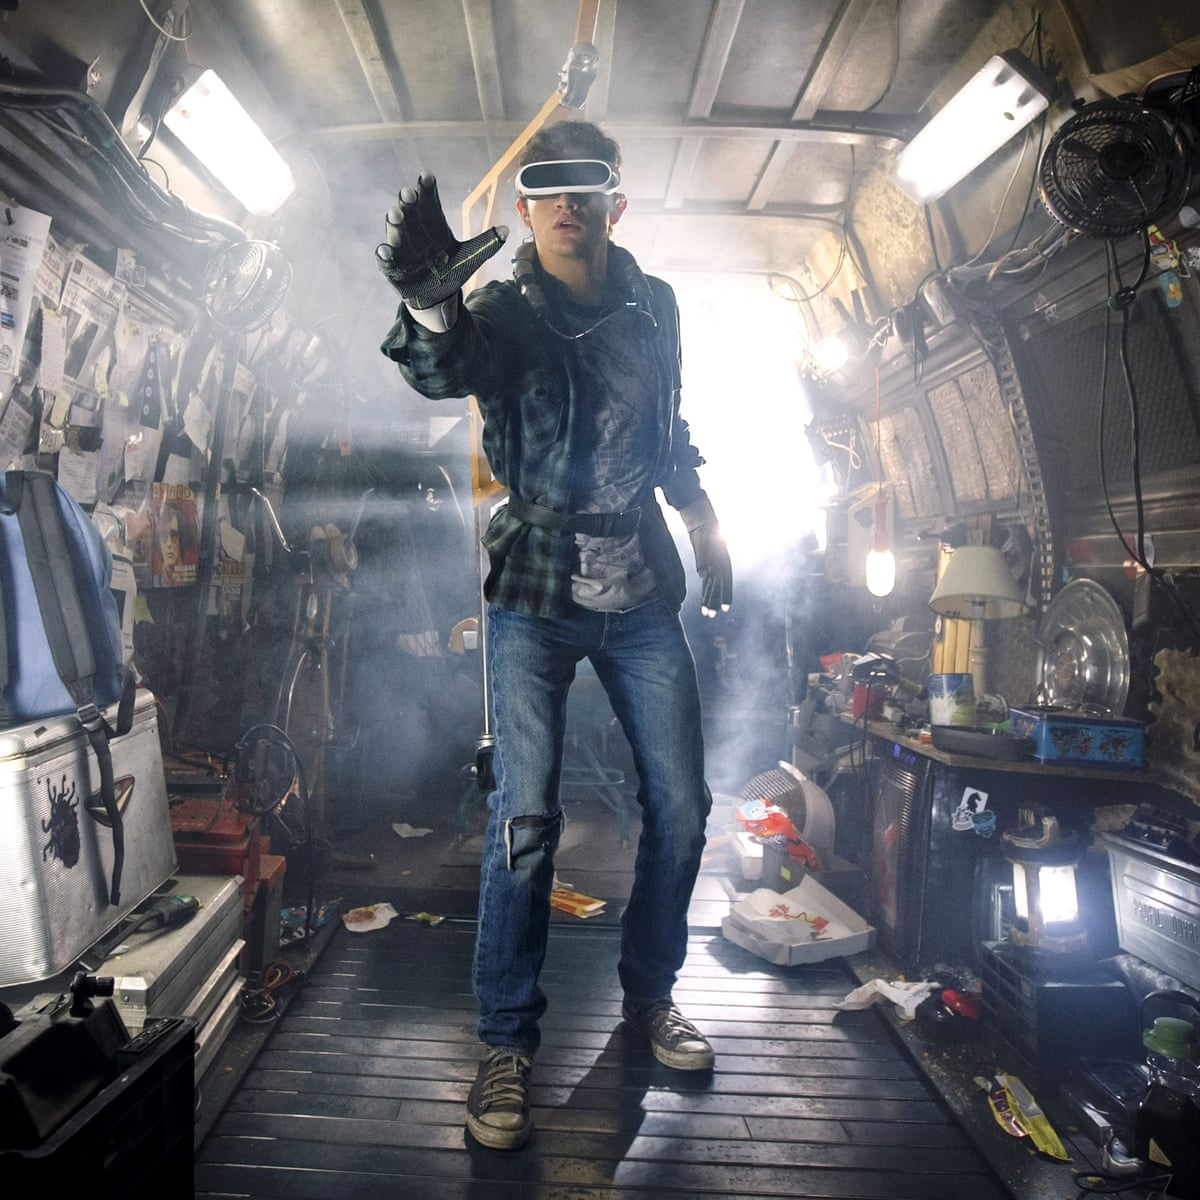 Spielberg S Ready Player One In 2045 Virtual Reality Is Everyone S Saviour Film The Guardian